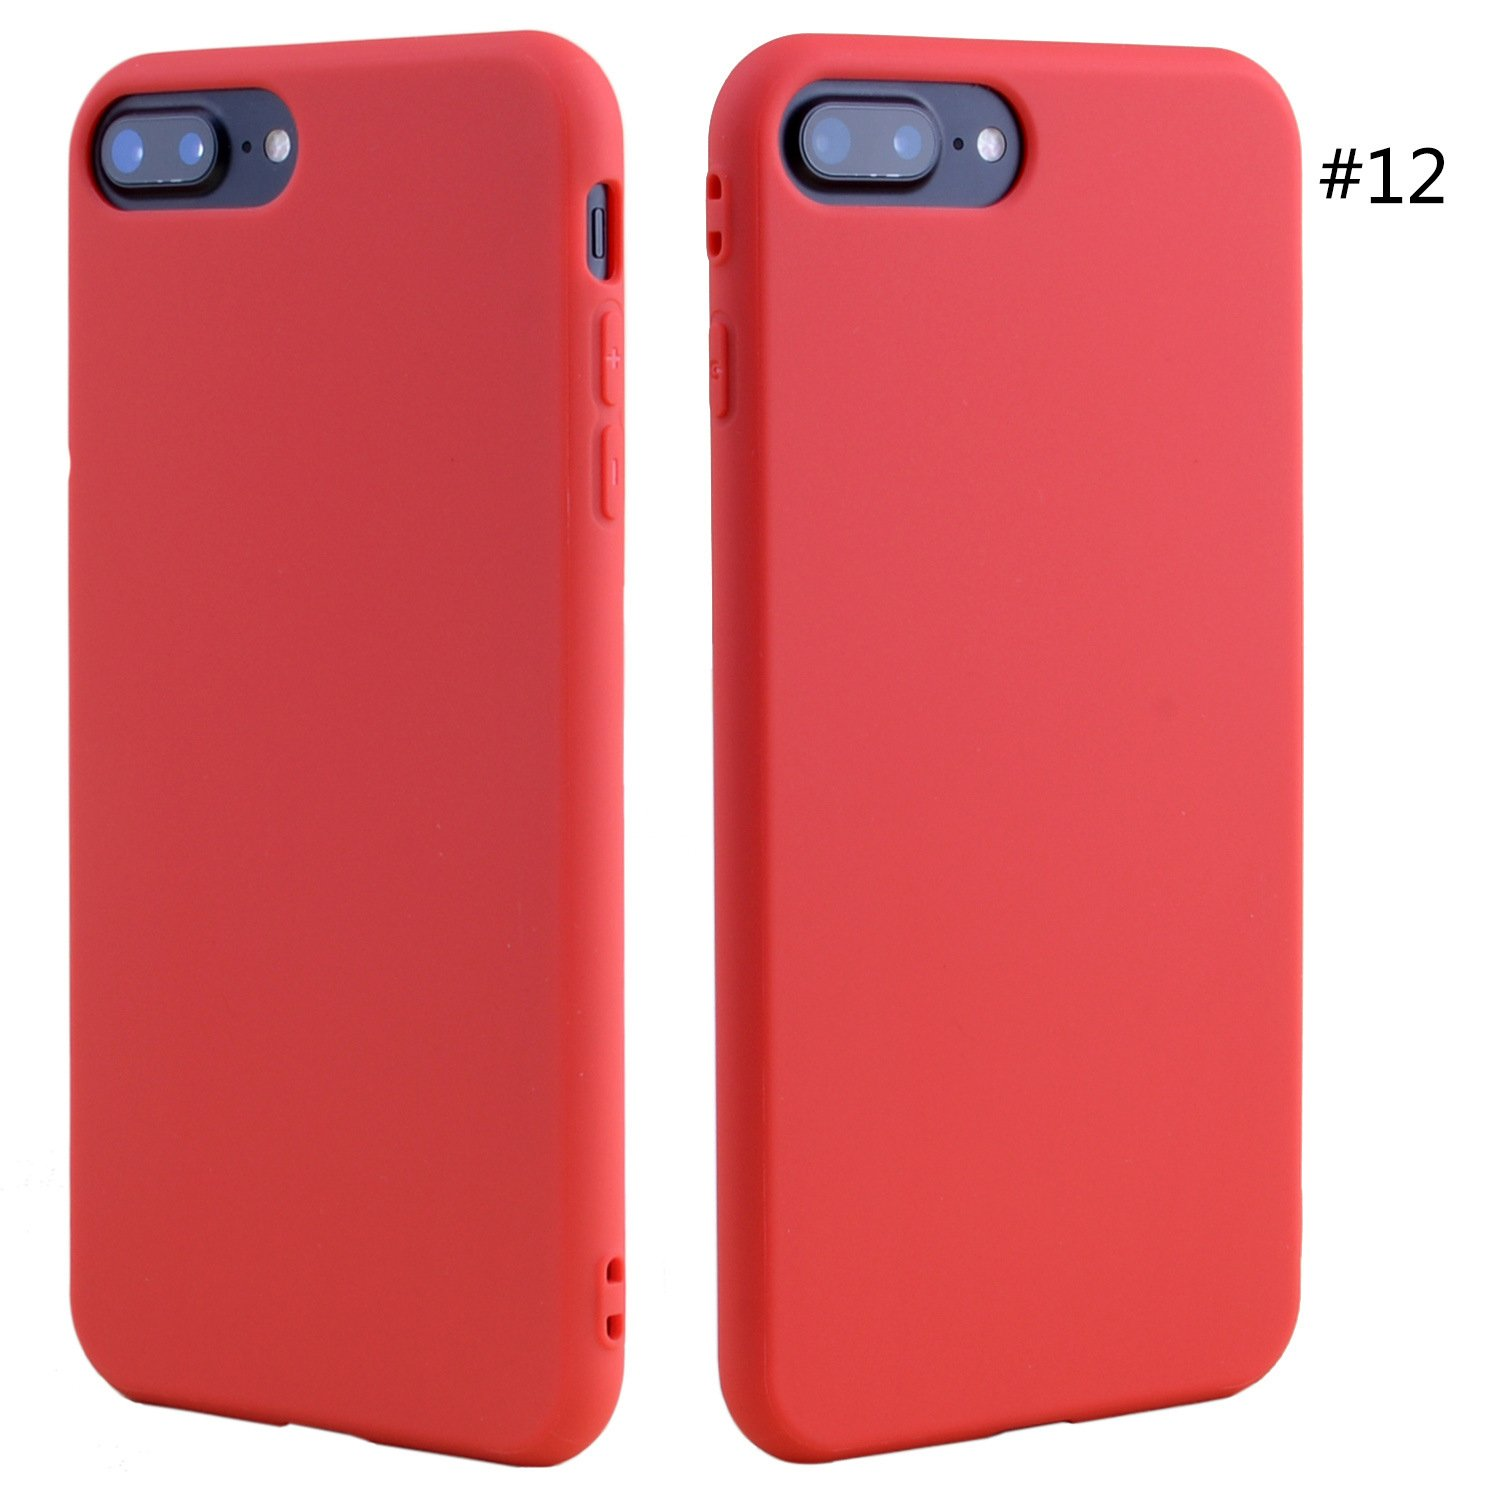 huge discount 78fde 162e0 CASE iPhone 8 Plus, case Cheap Phone Accessories Candy Colorful Ultra Thin  TPU Mobile Phone case for iPhone 8 Plus. RED. SERROT